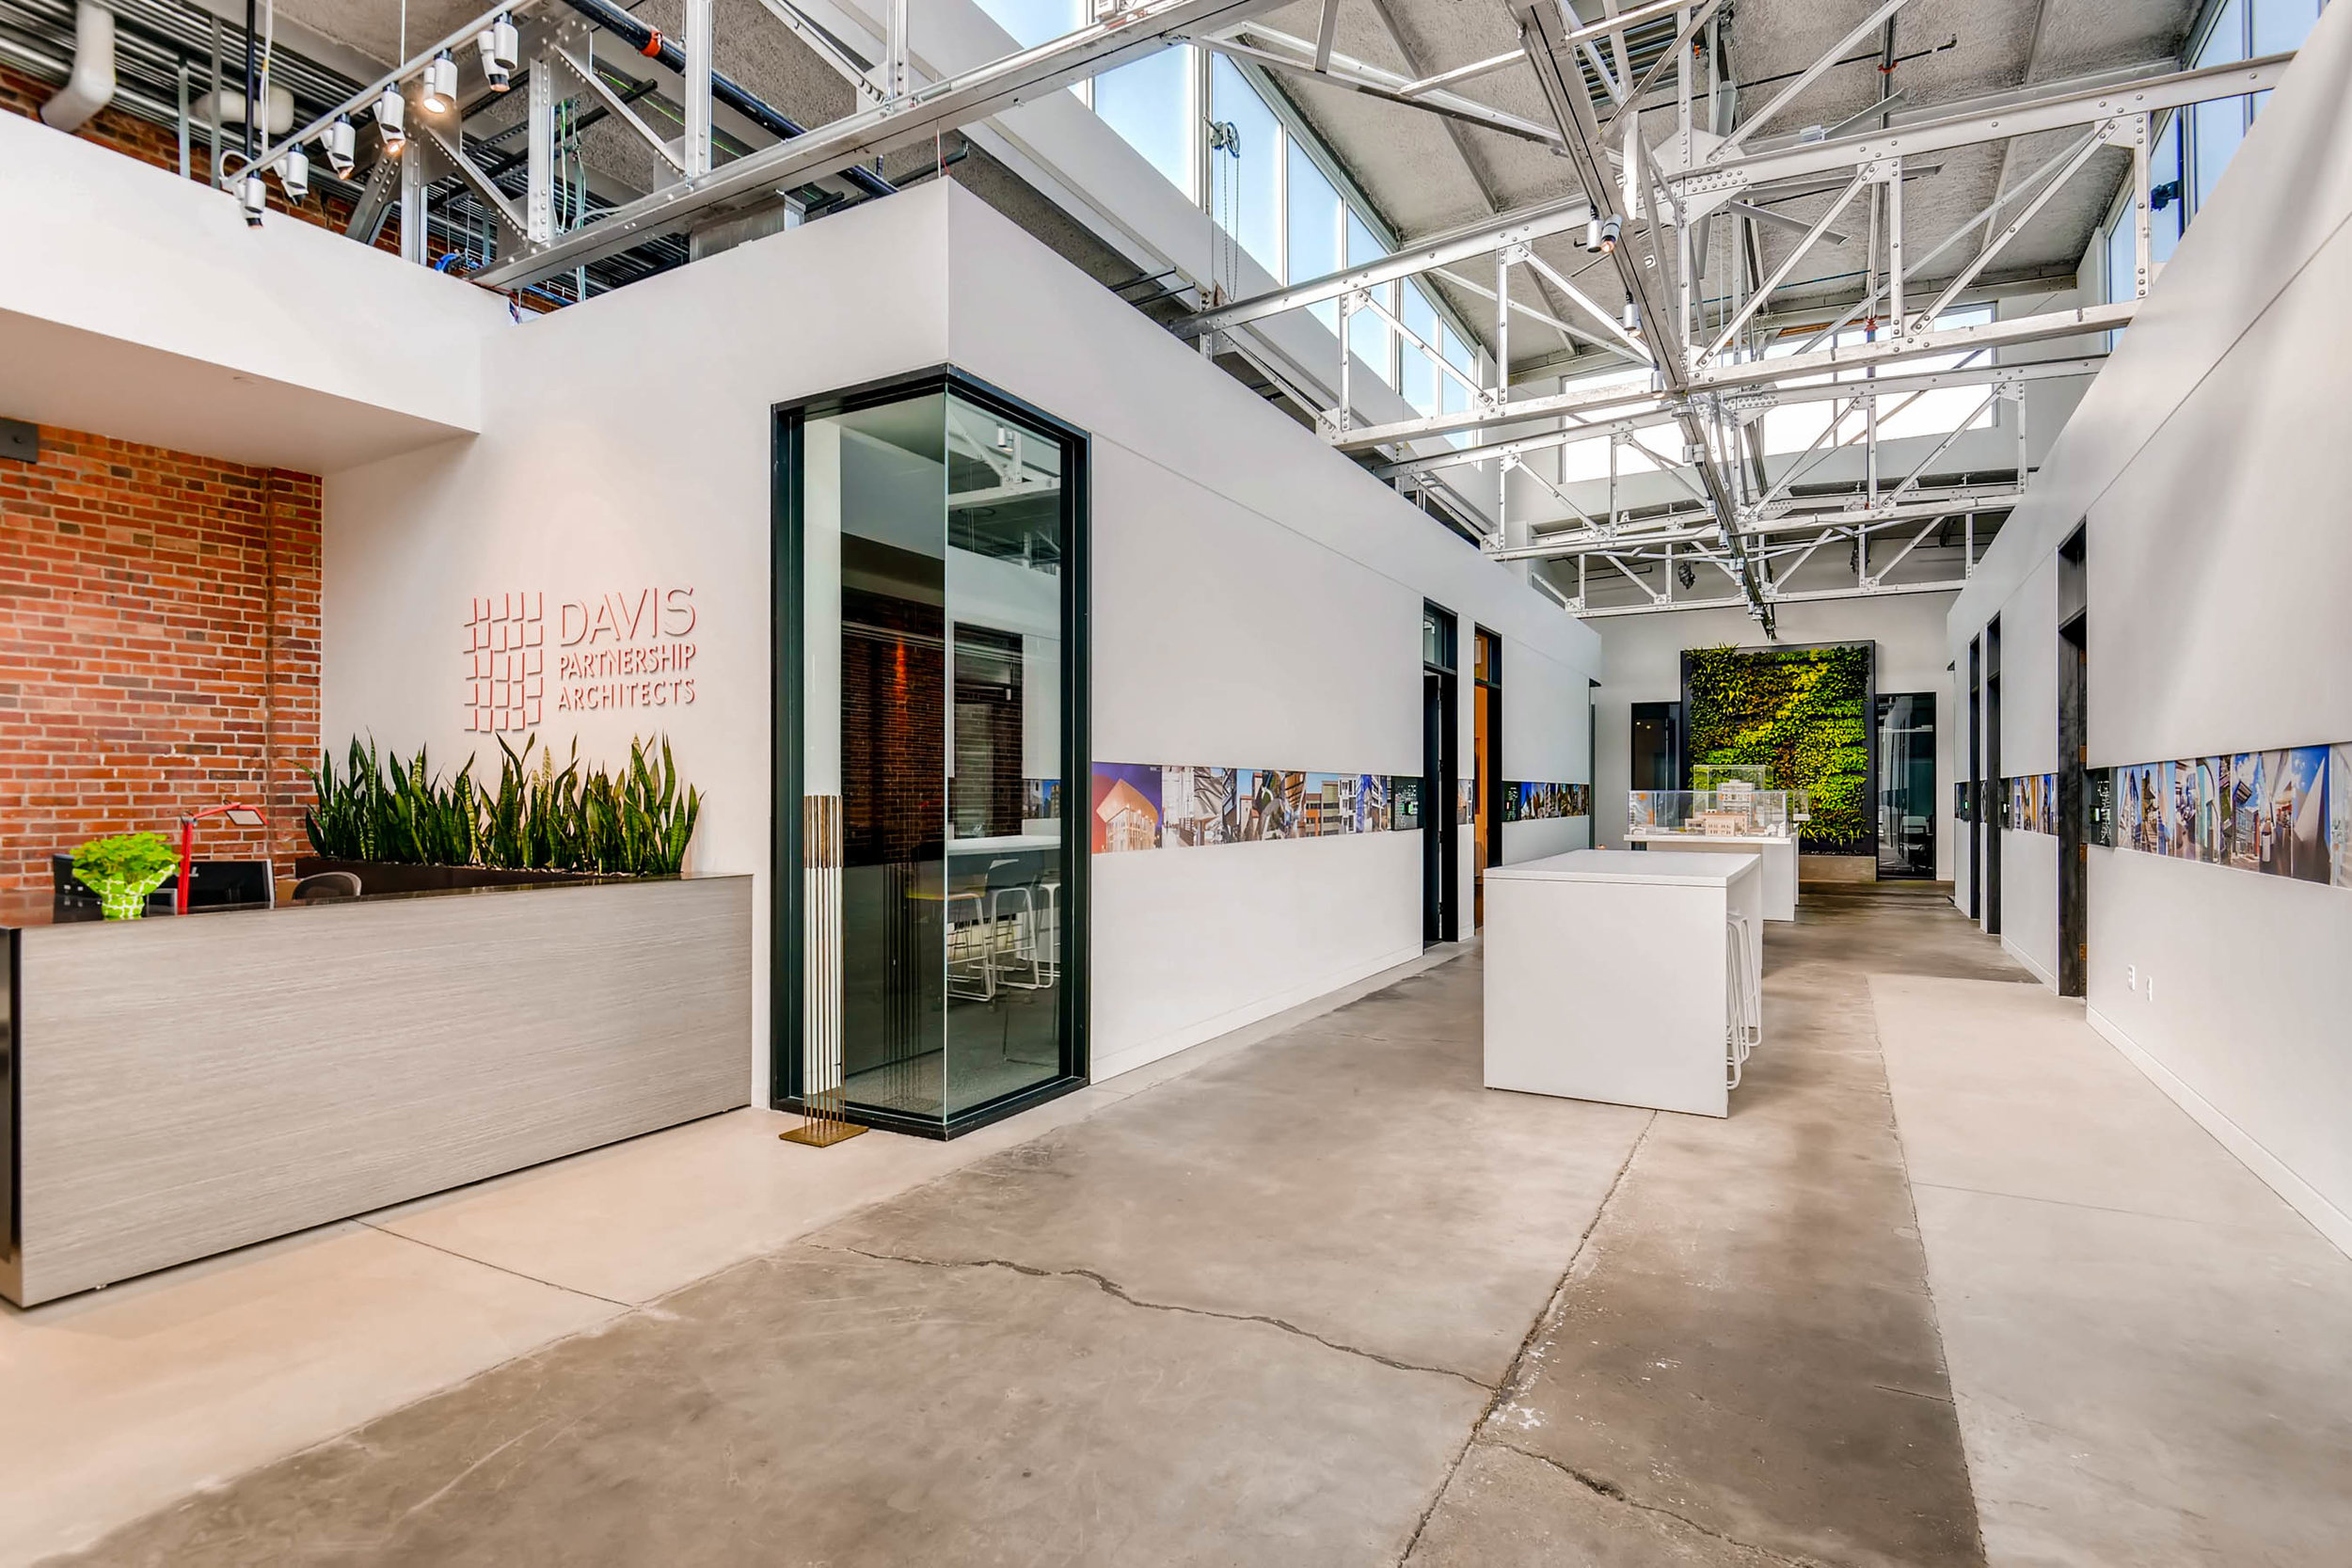 Davis Partnership Architects - Greenwall by Suite Plants